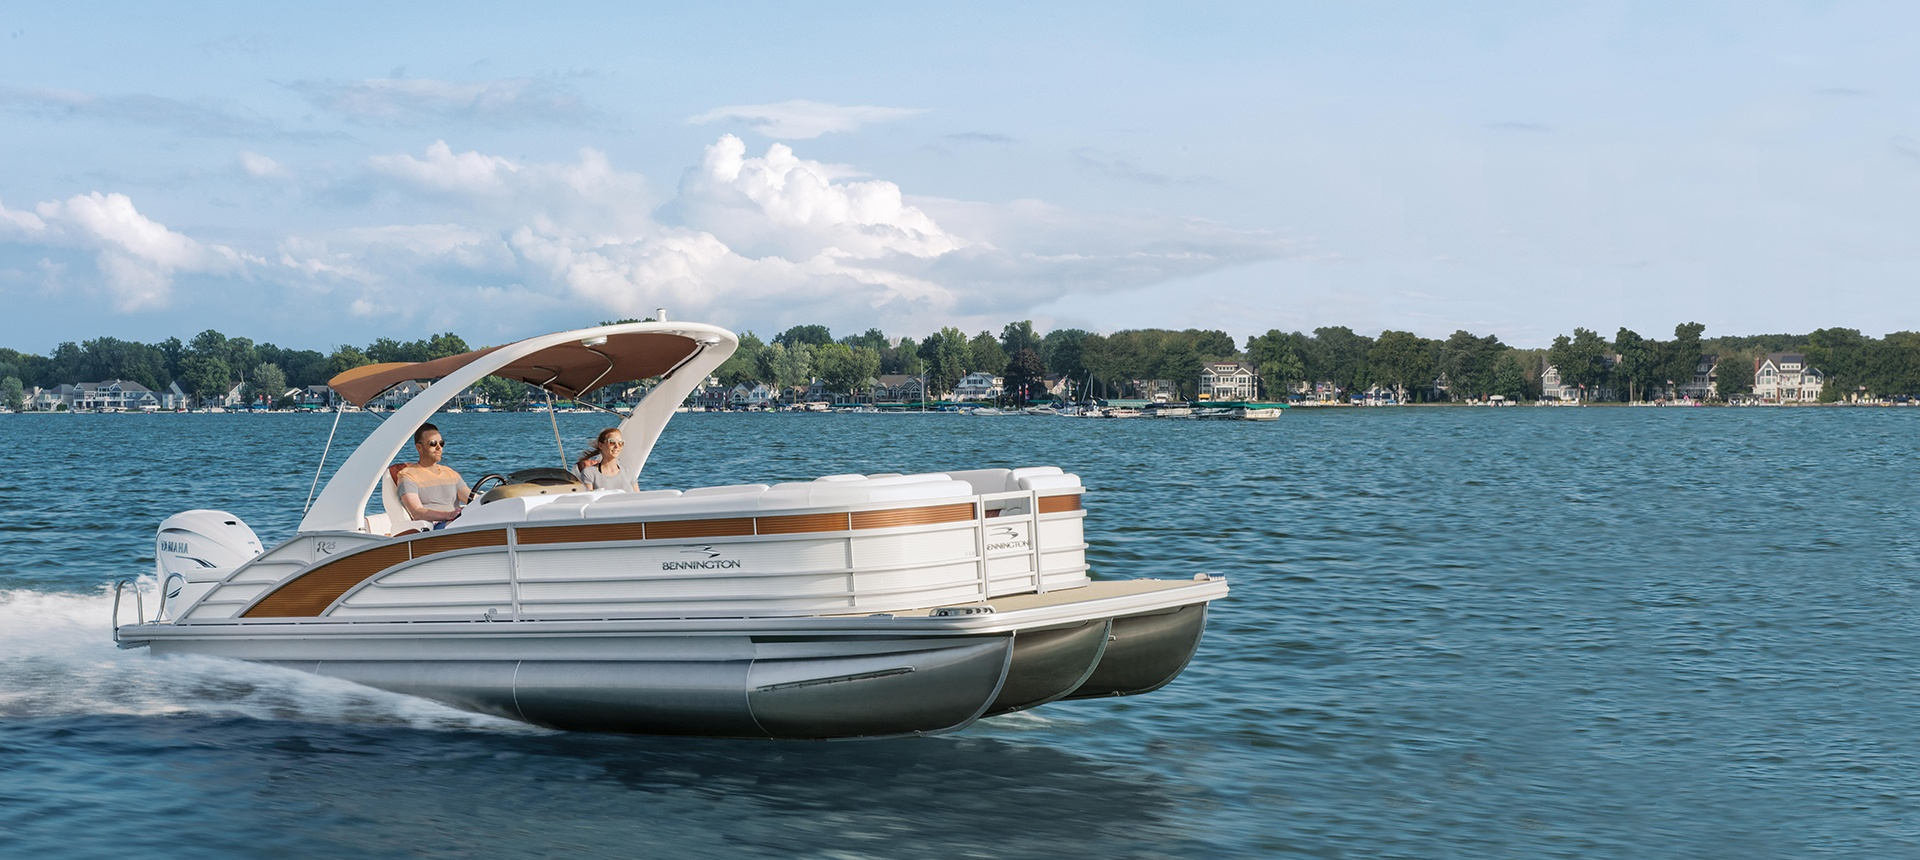 Pic of R series boat